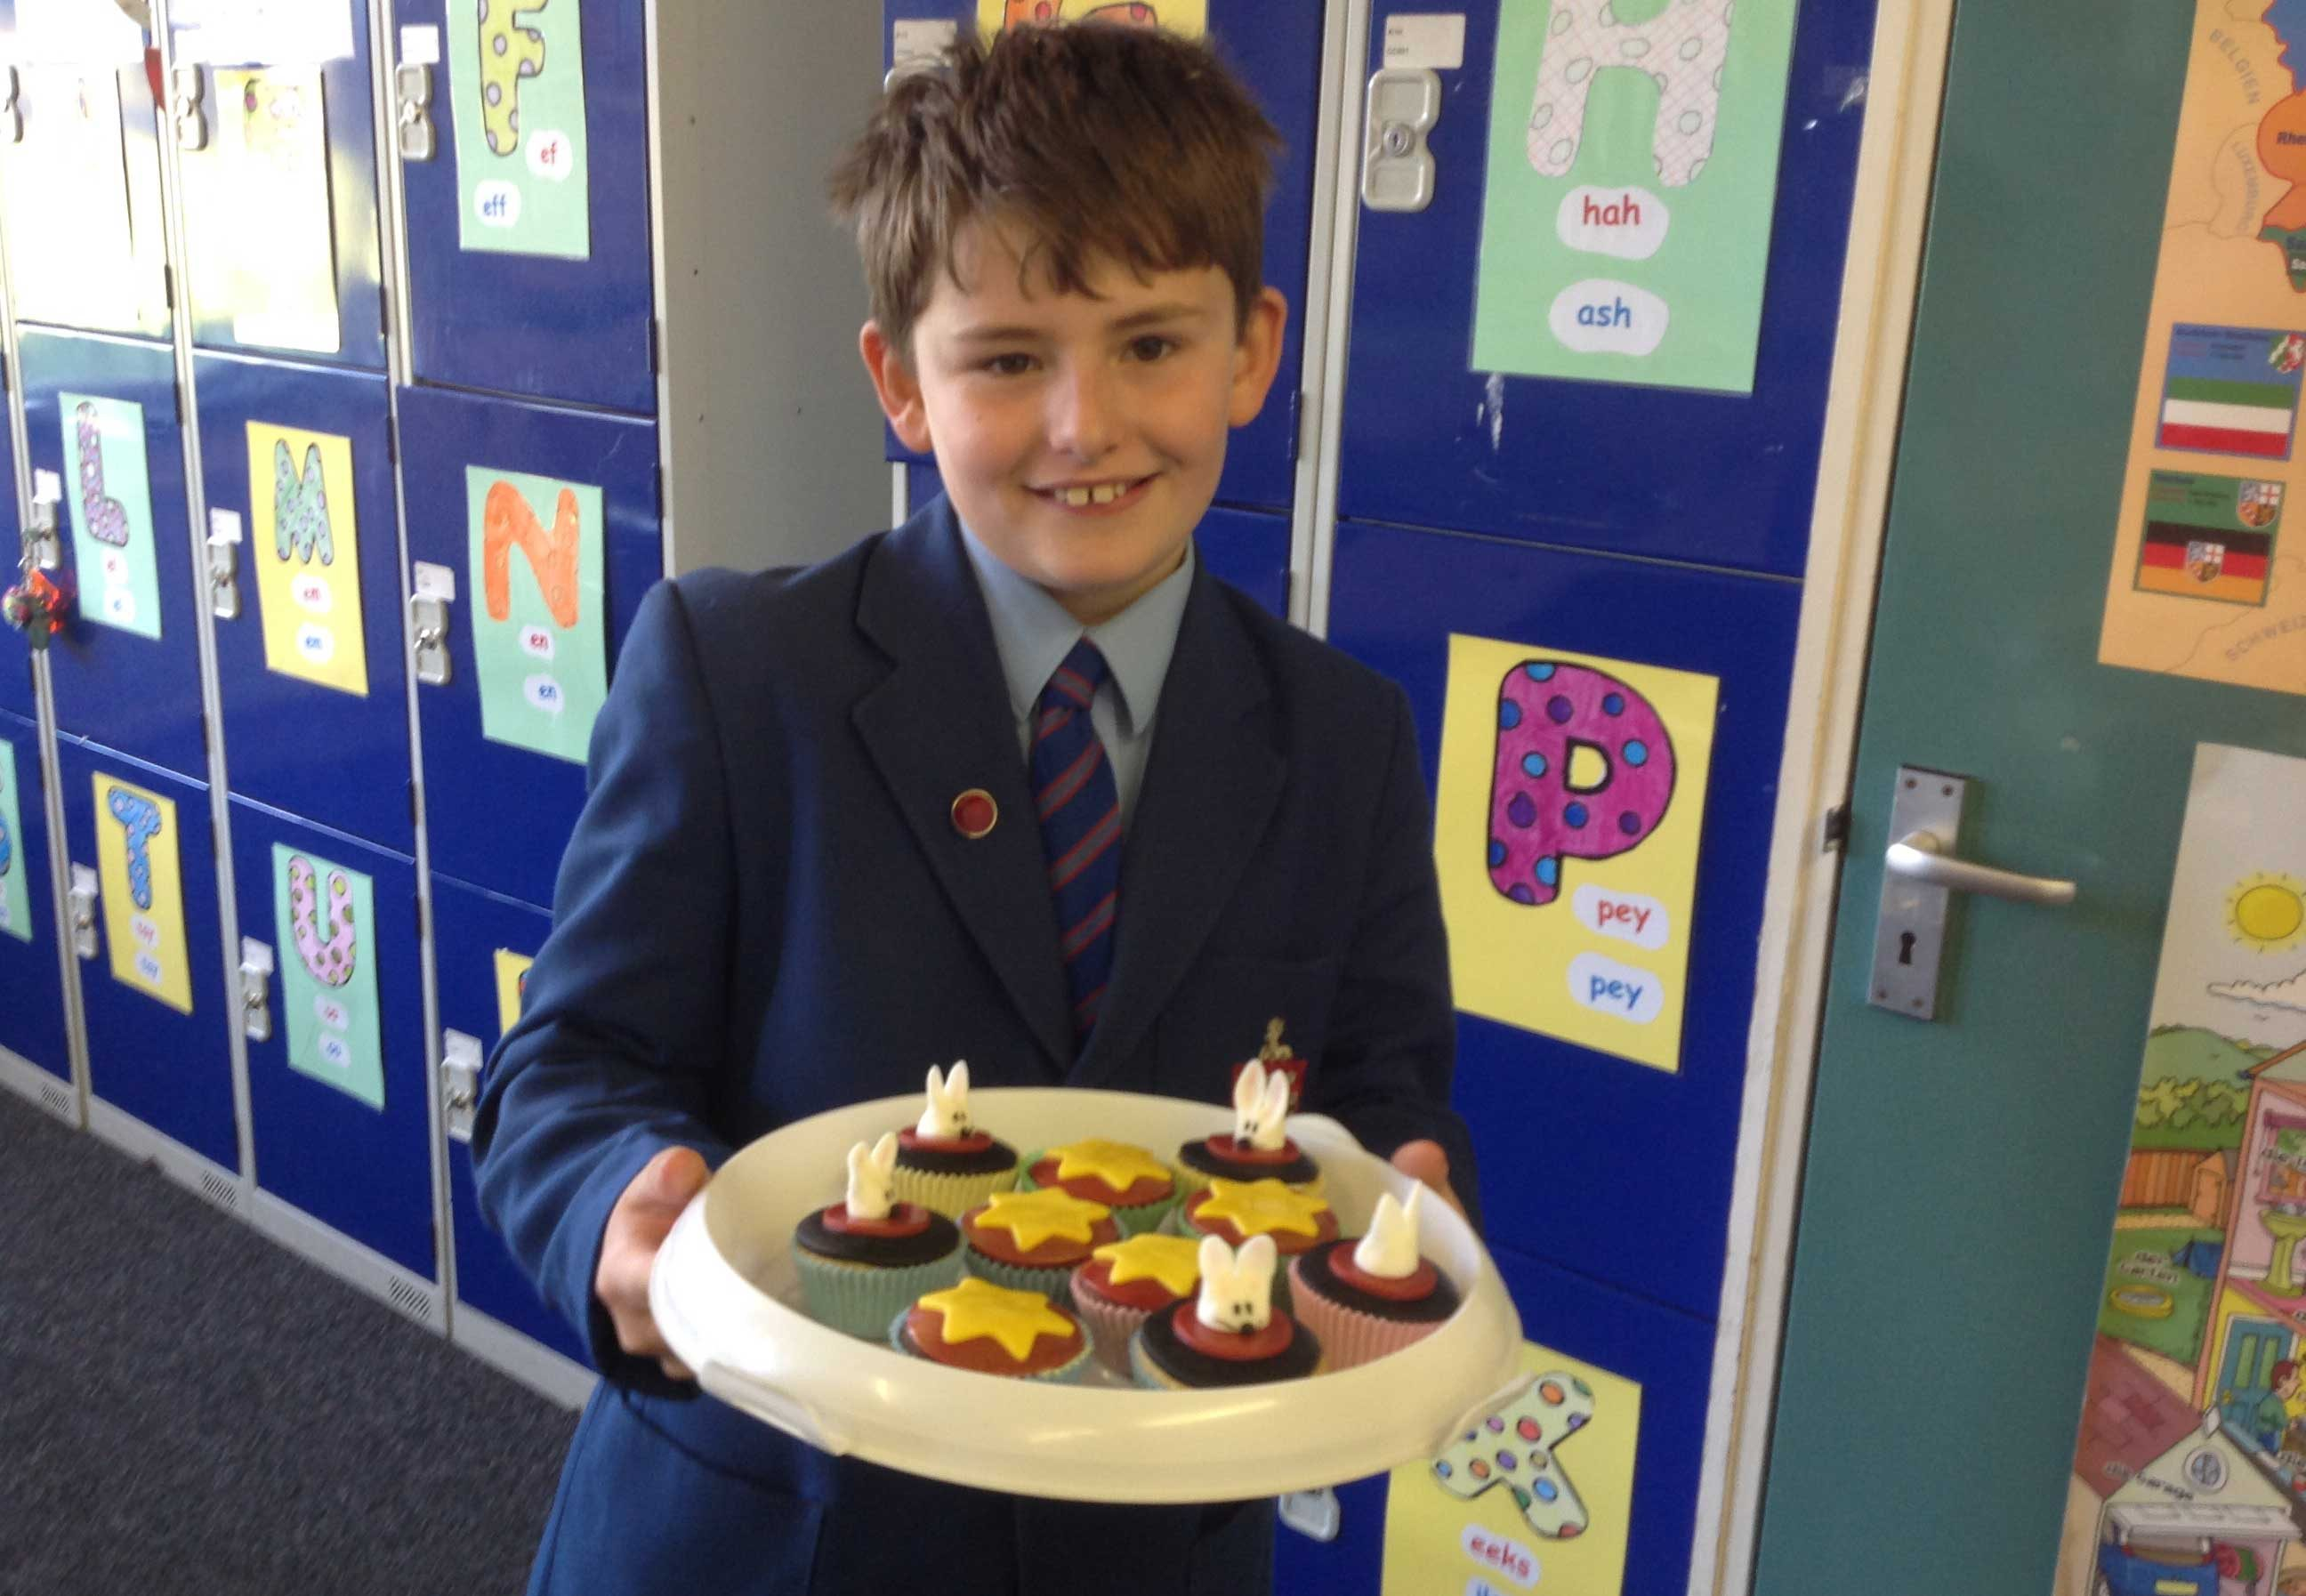 cake sale to raise fund for Macmillan Cancer support